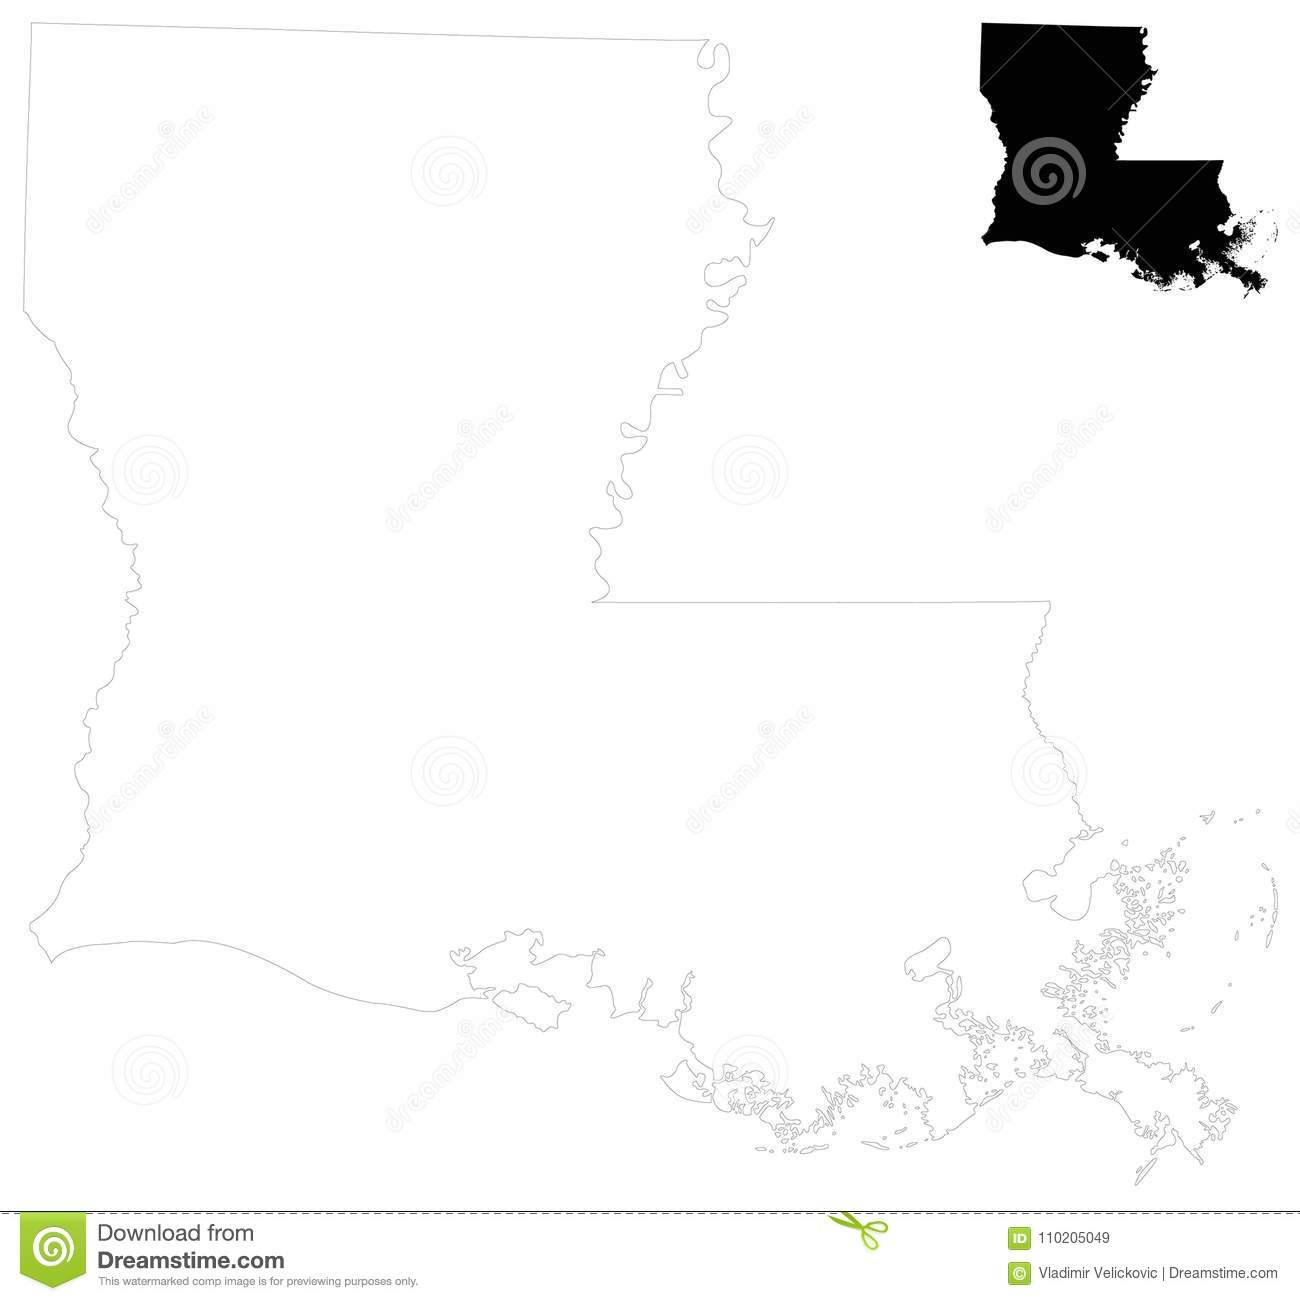 Louisiana Map - State In The Southeastern Region Of The United ...